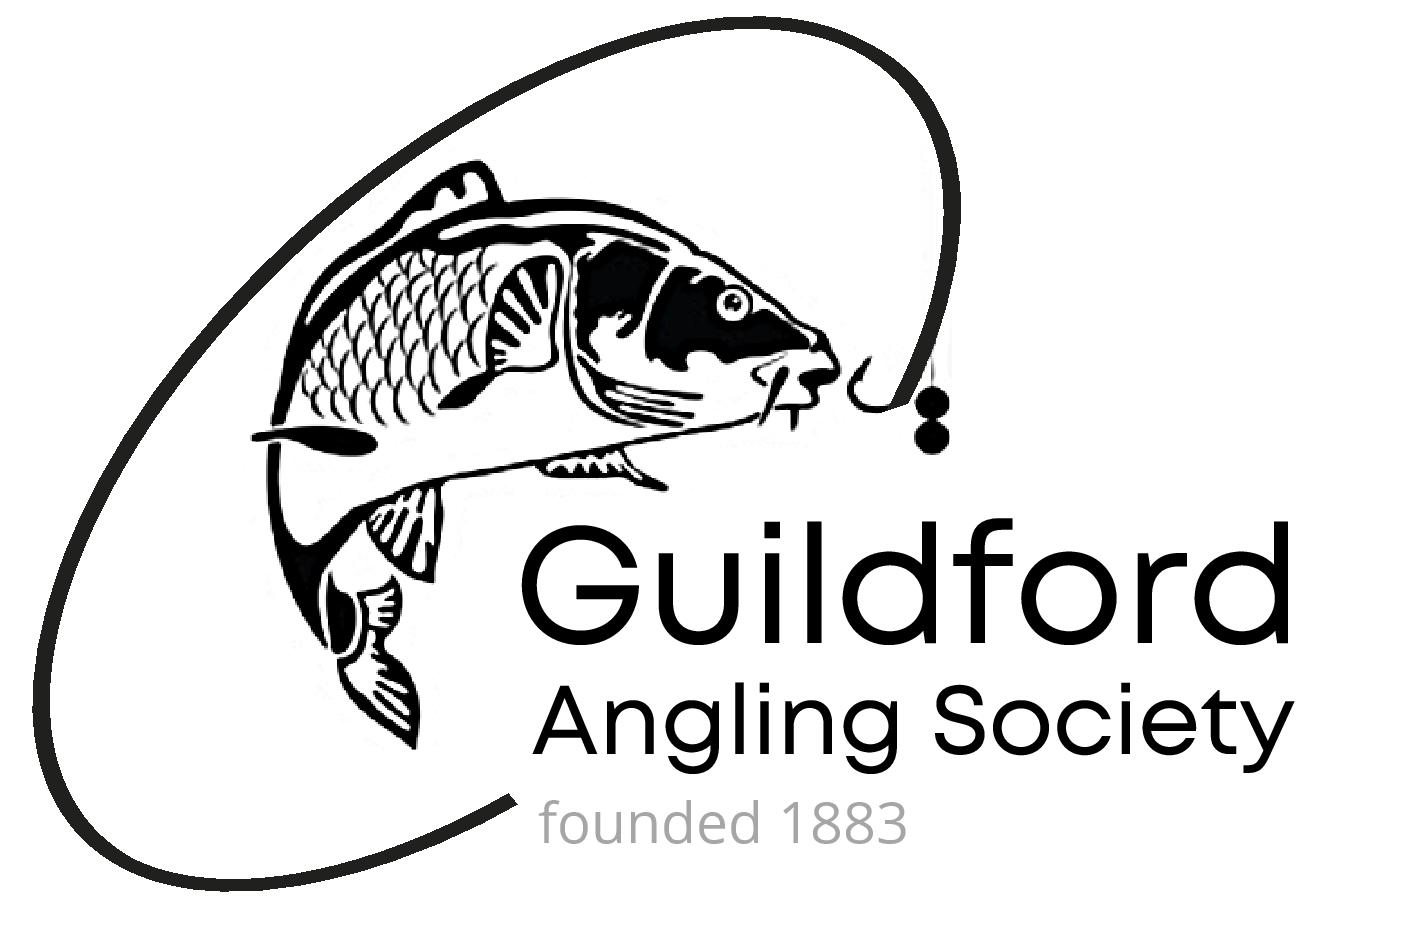 Guildford Angling Society Fishing Logo